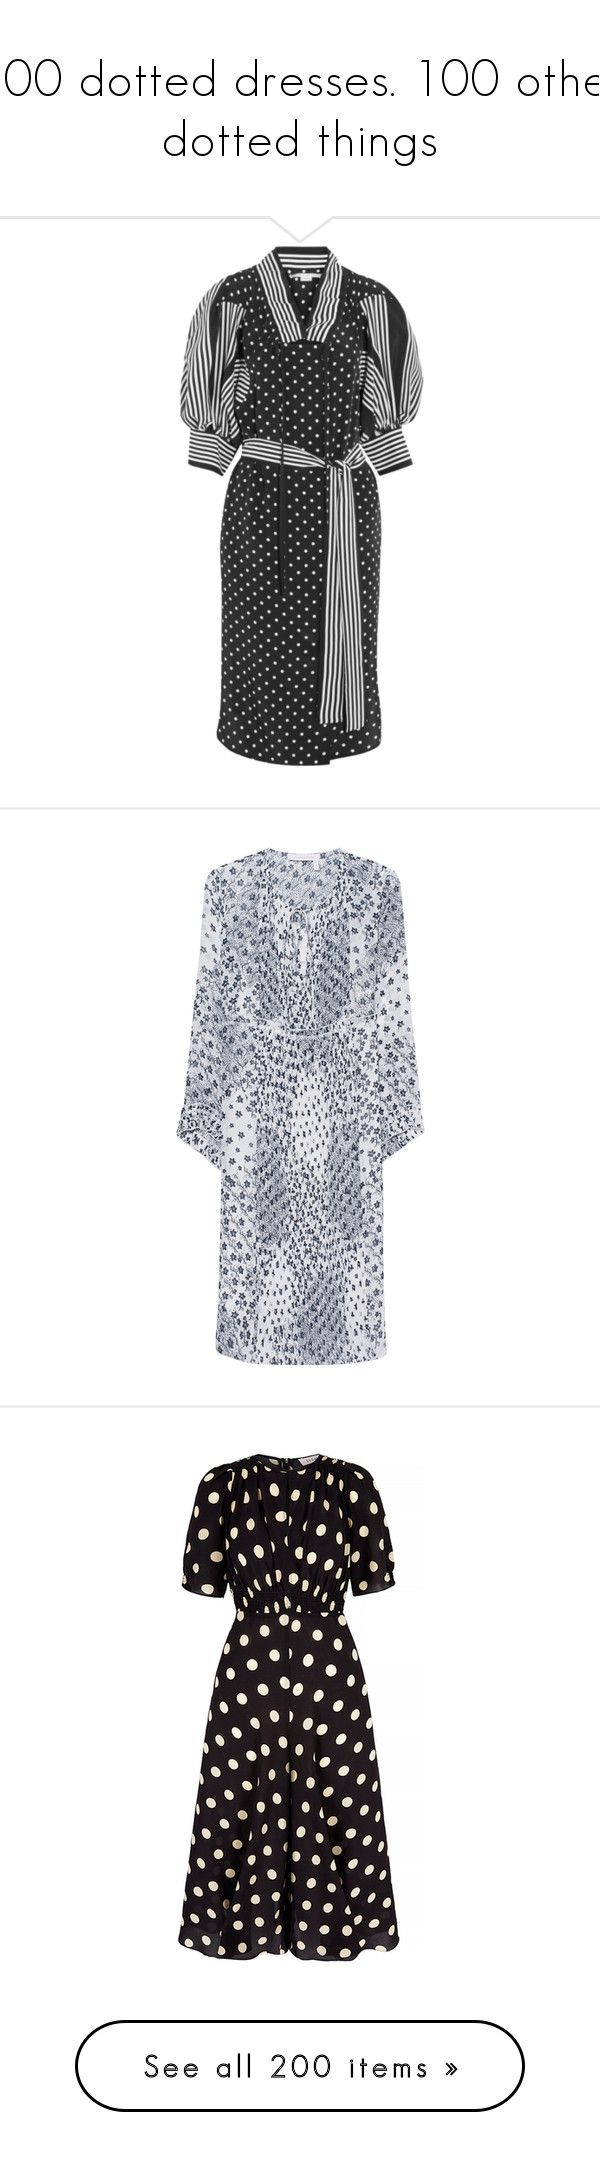 """""""100 dotted dresses. 100 other dotted things"""" by lorika-borika on Polyvore featuring dresses, black and white dresses, loose fitting dresses, black and white polka dot dress, stella mccartney dresses, silk dress, short dresses, white mini dress, white dress и mini dress"""